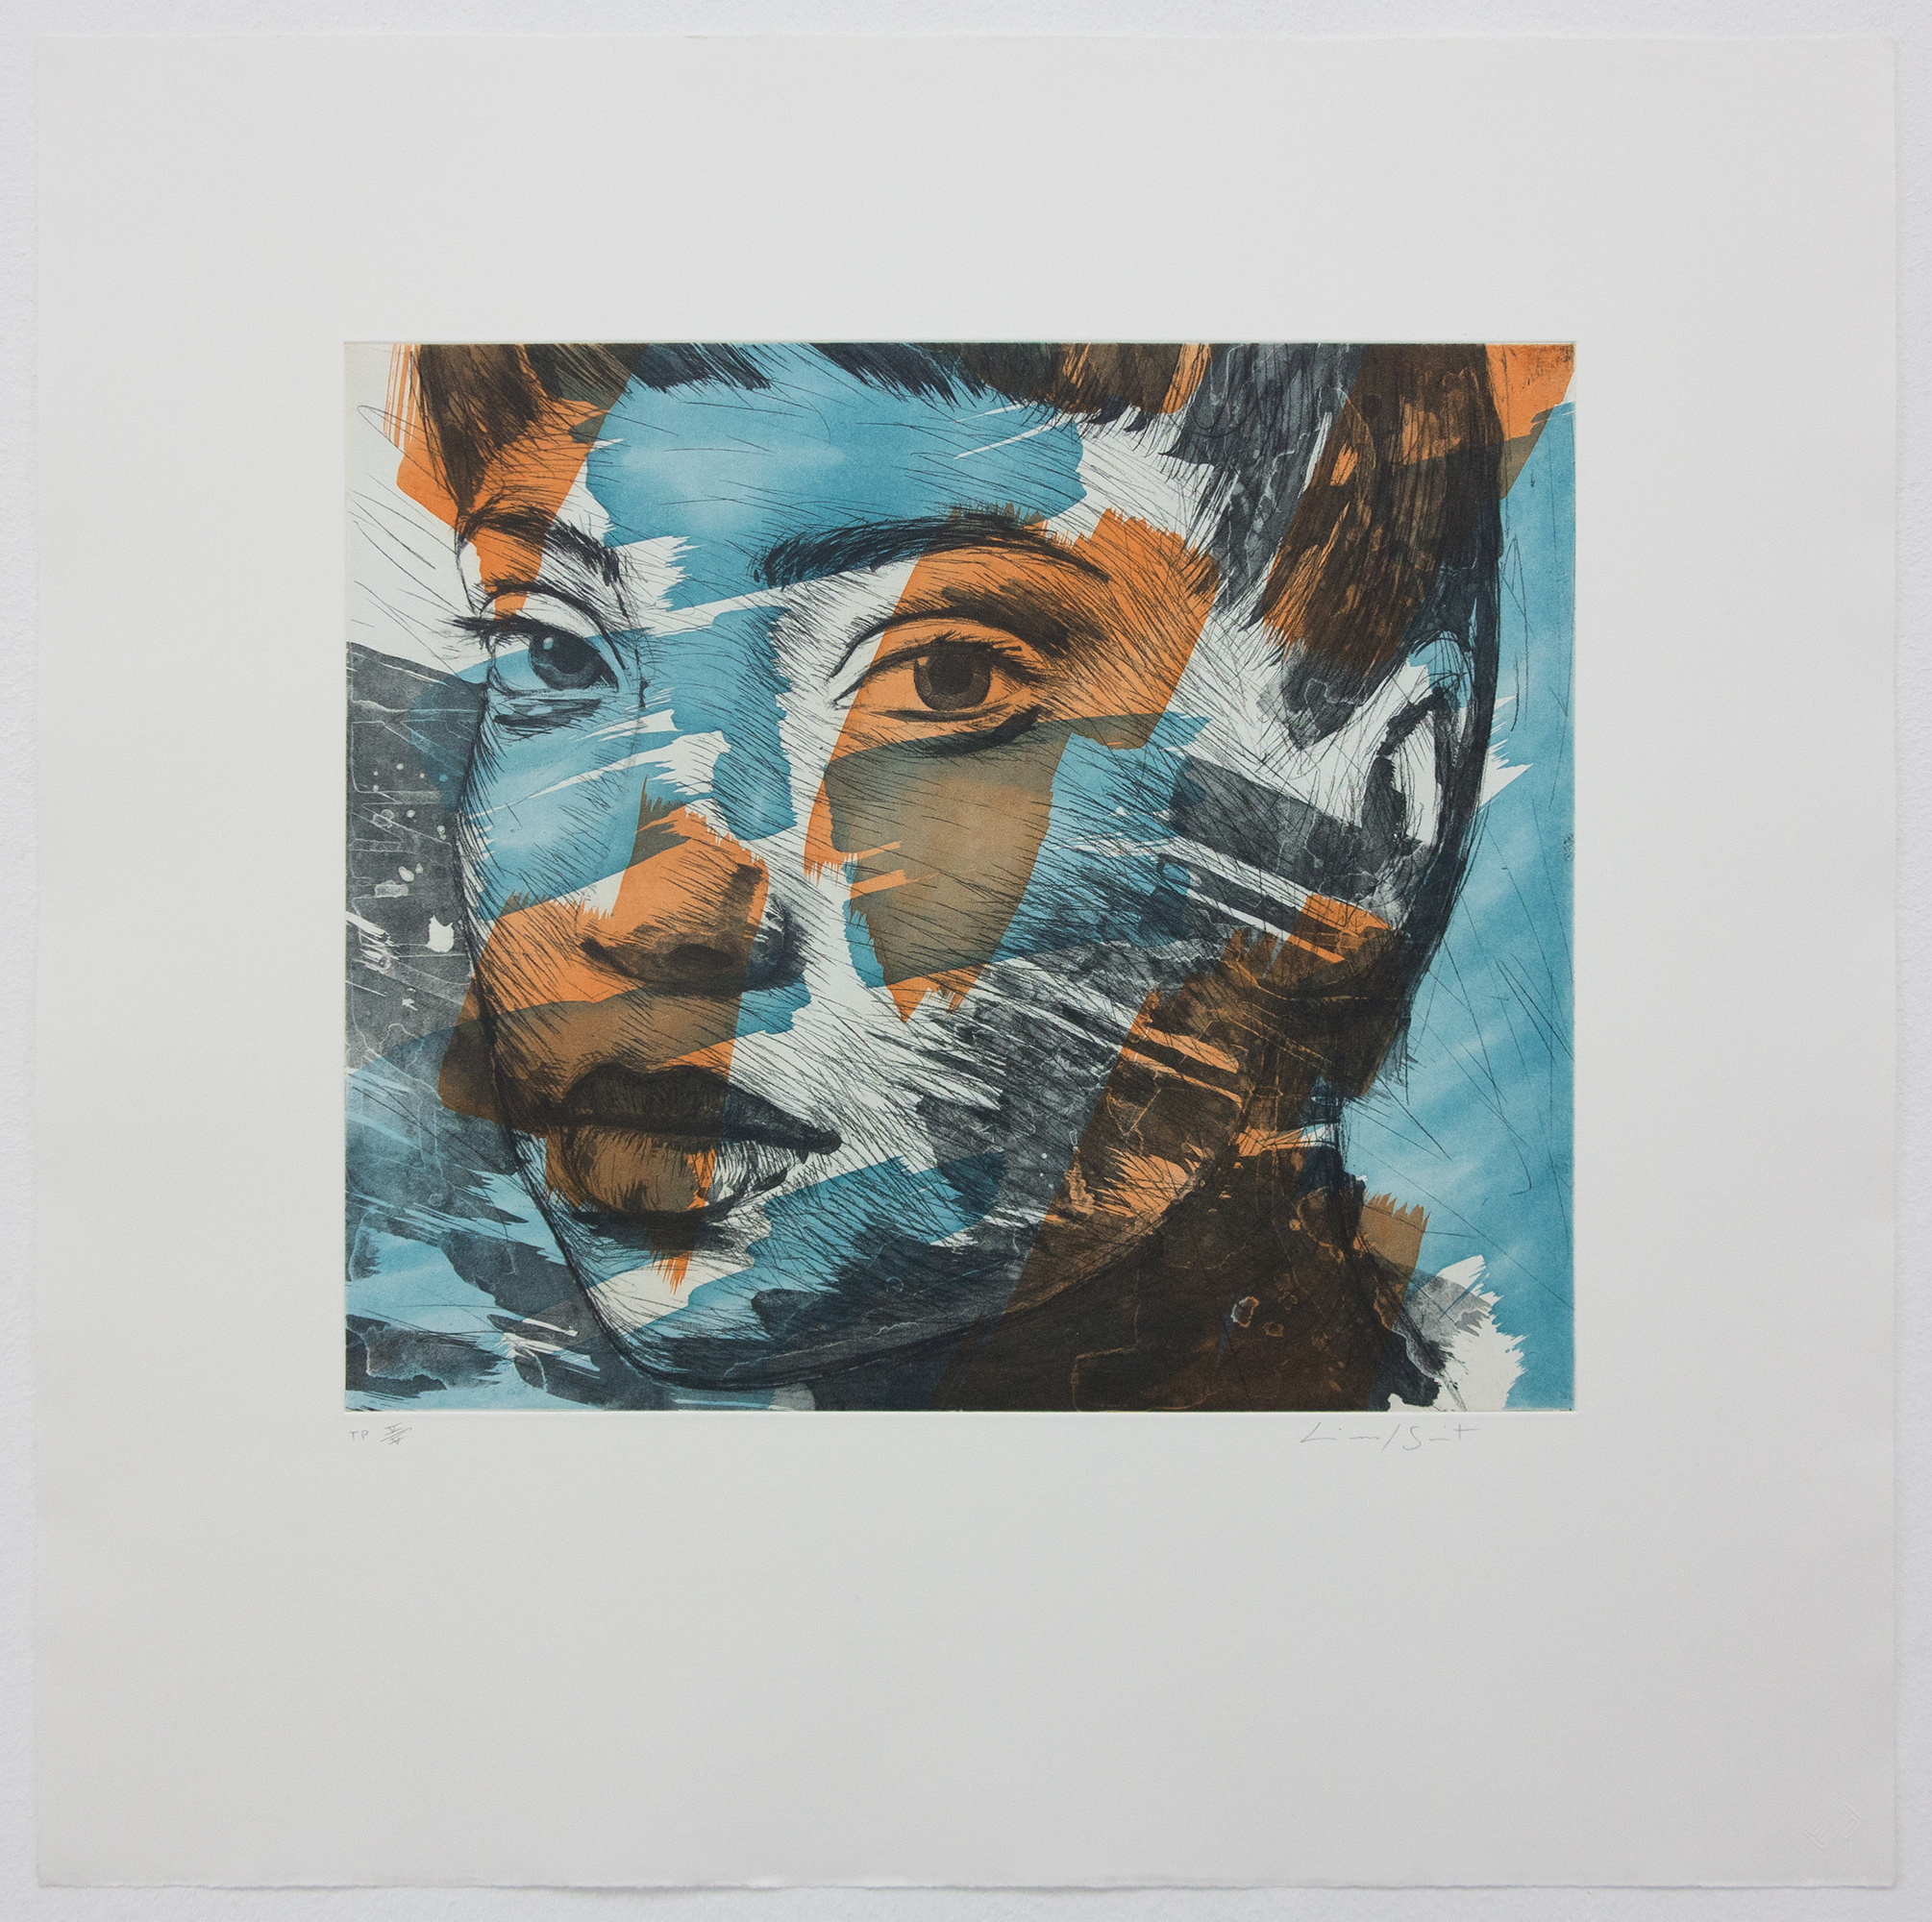 Lionel Smit, Prints, Etchings, South African Prints